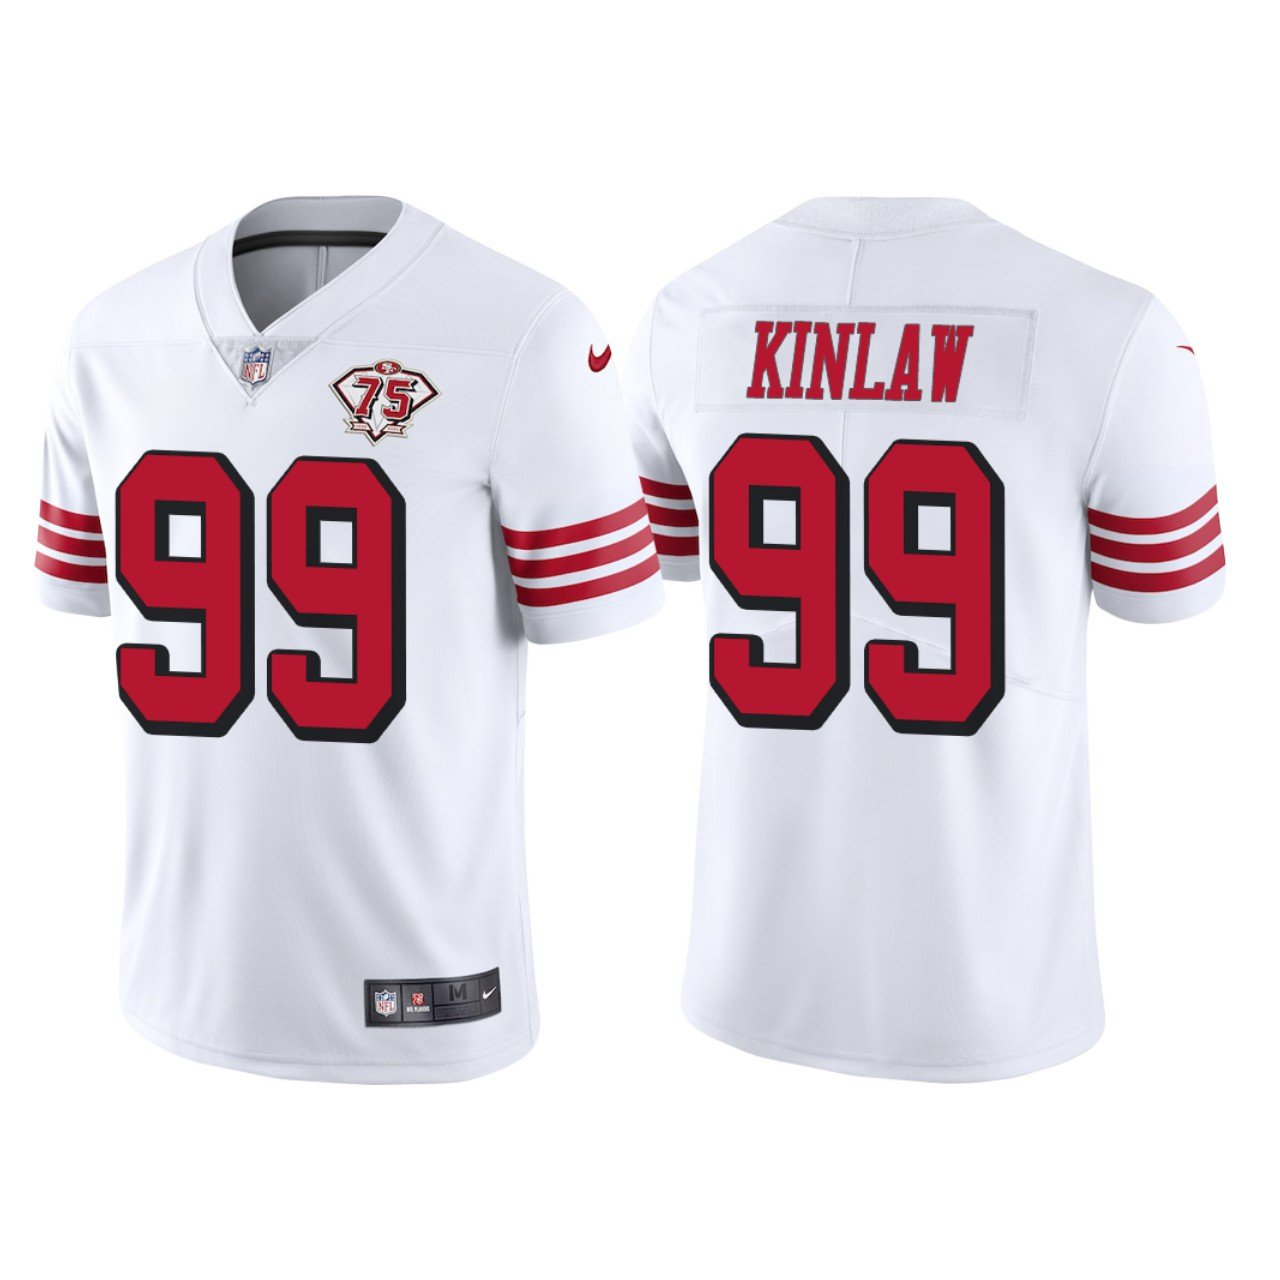 Men's #99 Javon Kinlaw San Francisco 49ers White Throwback Limited Jersey 75th Anniversary Stitched